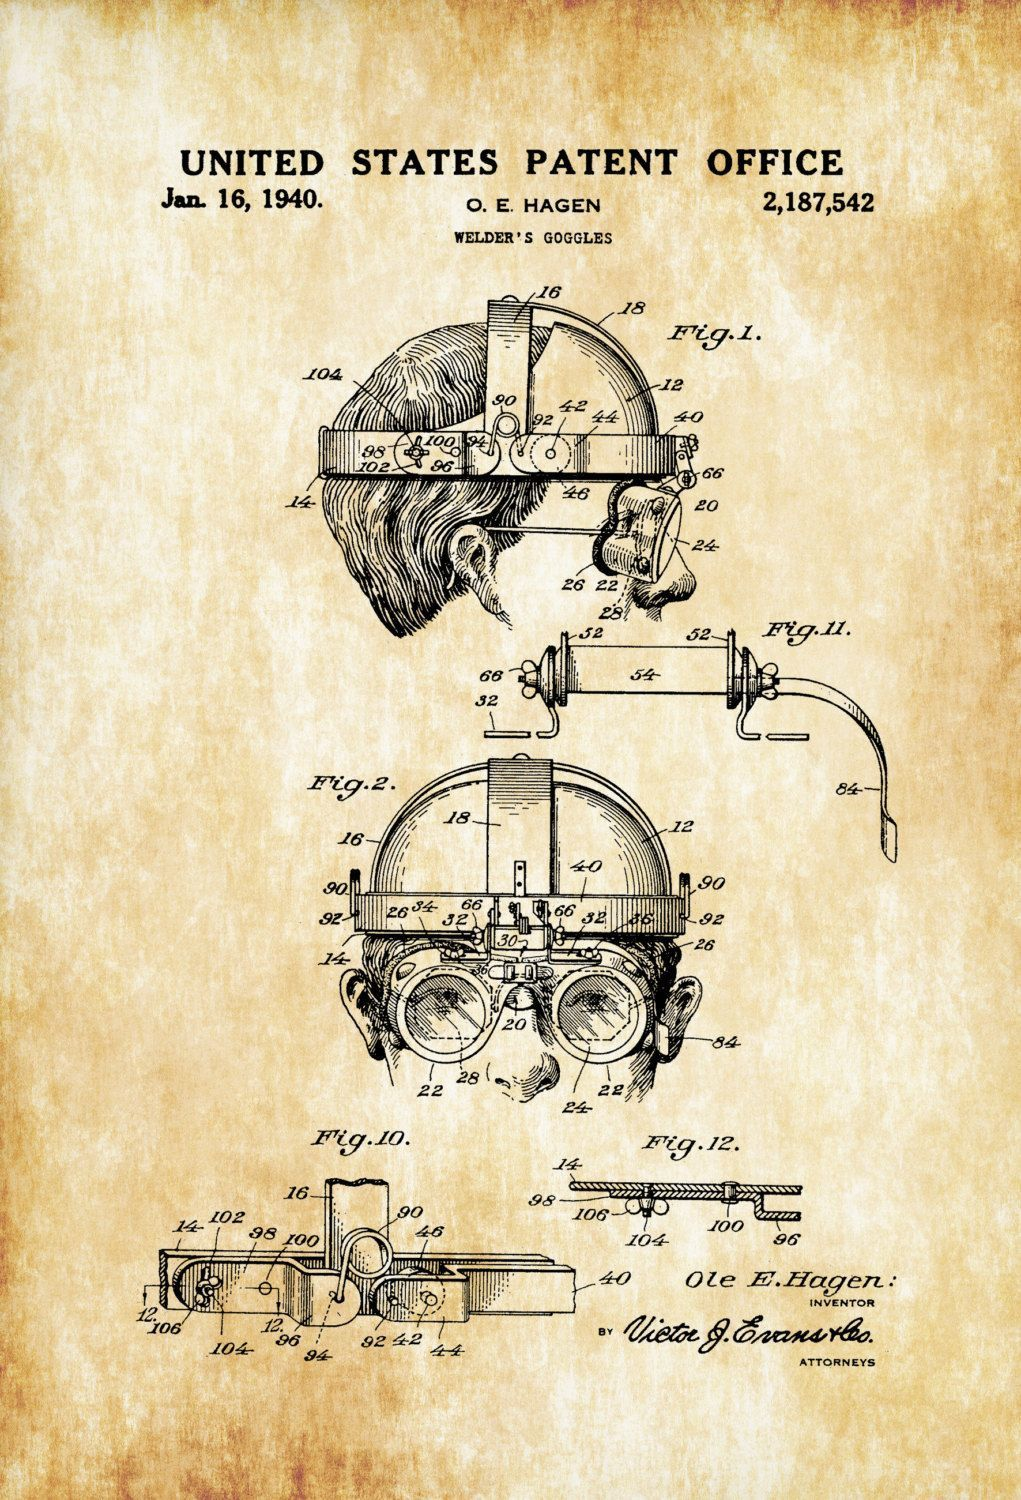 A patent print poster of a Welder's Goggles invented by O